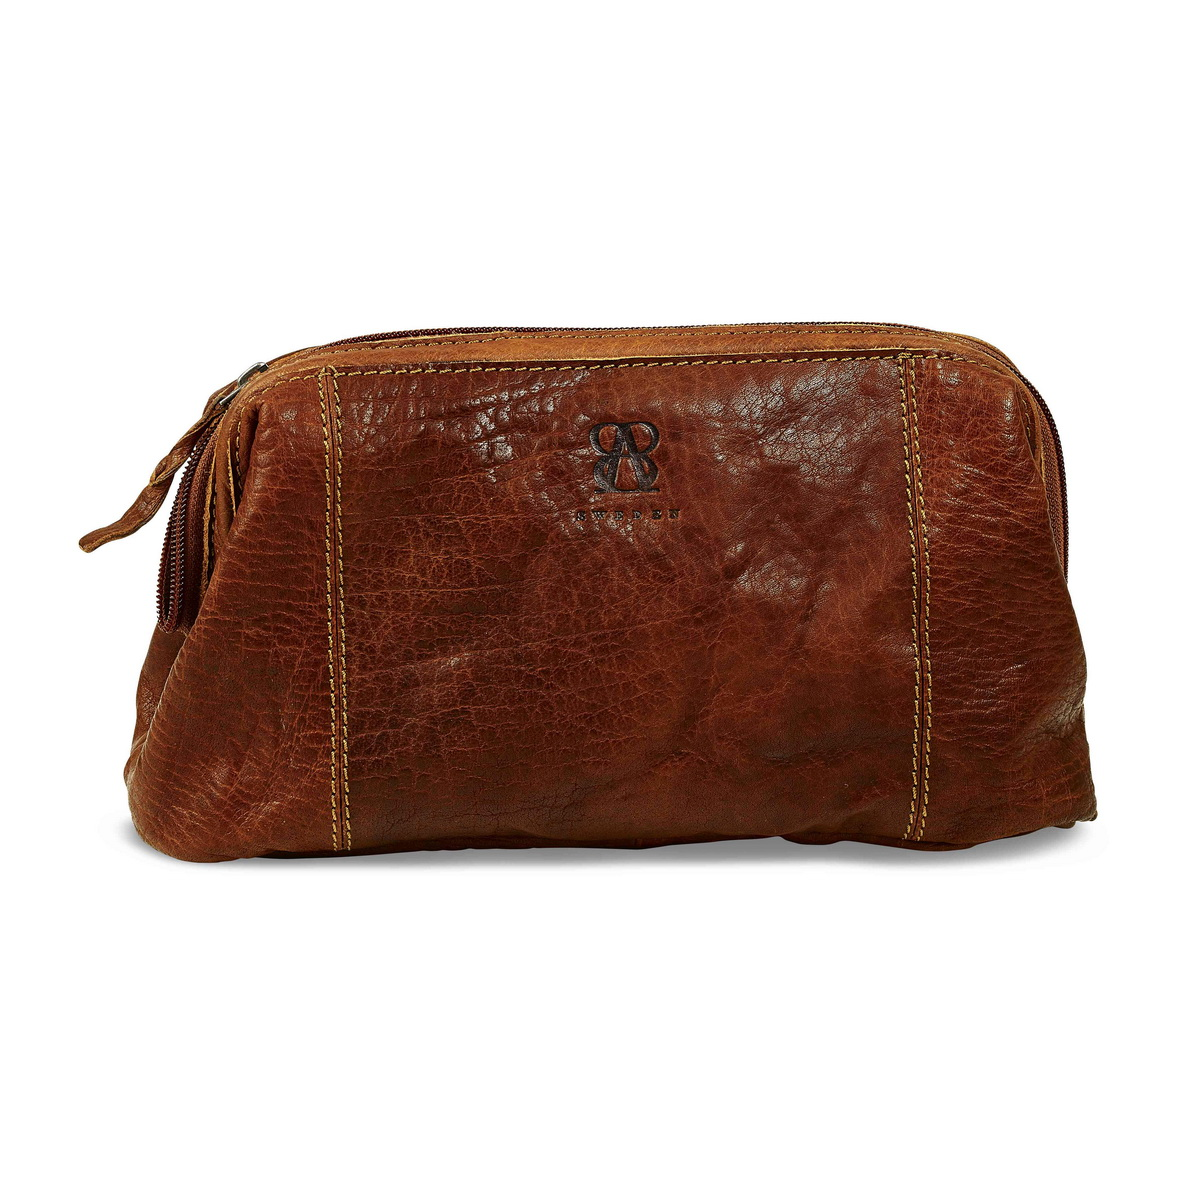 Leather toiletry bag from B away Brown unisex model